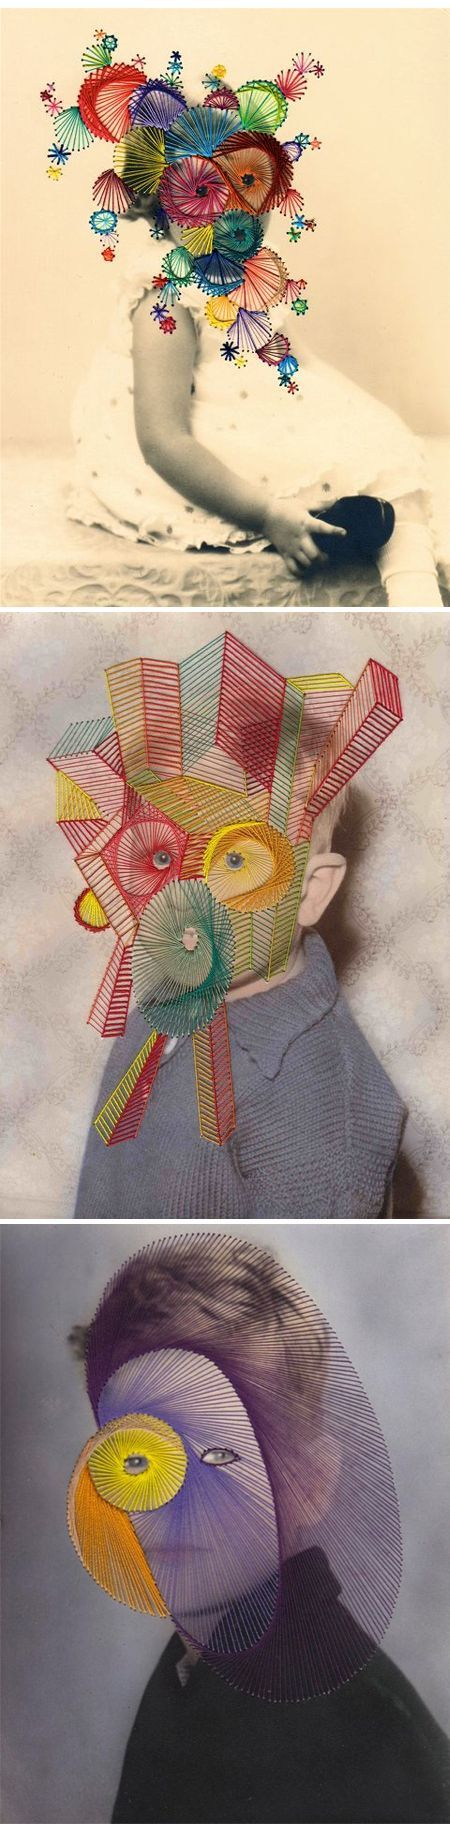 Sewing onto Photographs PHOTO EMBROIDERY | Alternative Photography Individualized Course 2015